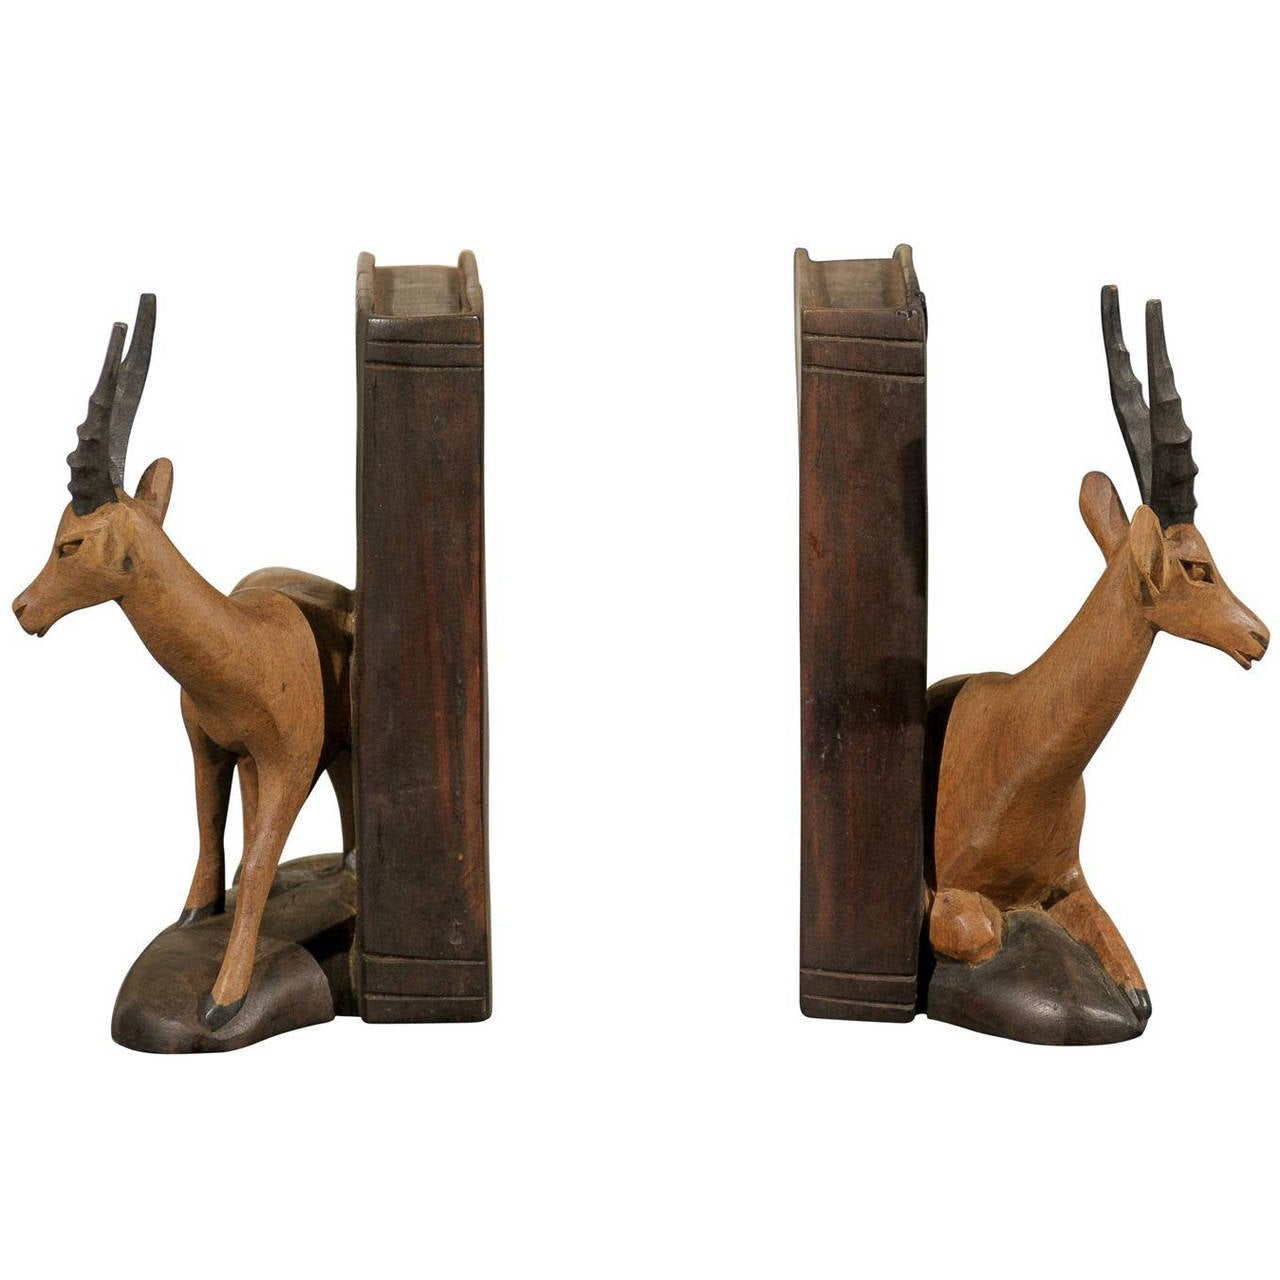 Superb img of Pair of Hand Carved Wooden Bookends at 1stdibs with #6A462B color and 1280x1280 pixels